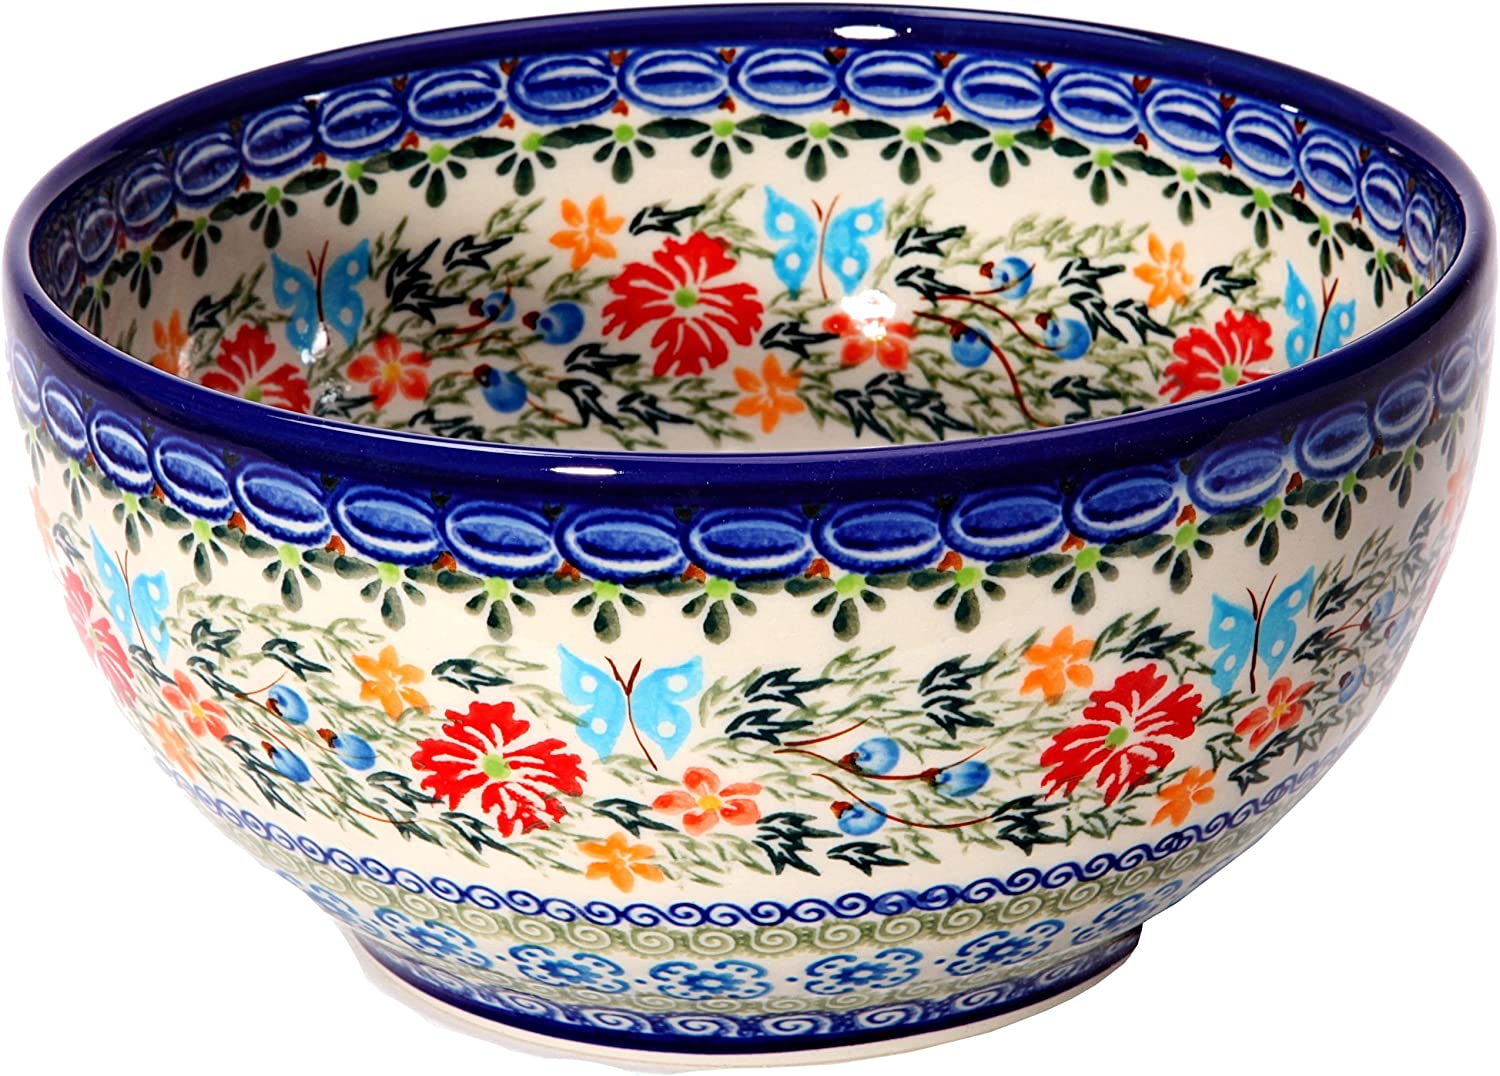 Polish Pottery Ceramika Boleslawiec Bowl Cups, Royal Blue Patterns with Red Cornflower and Blue Butterflies Motif, 5-1/4-Inch